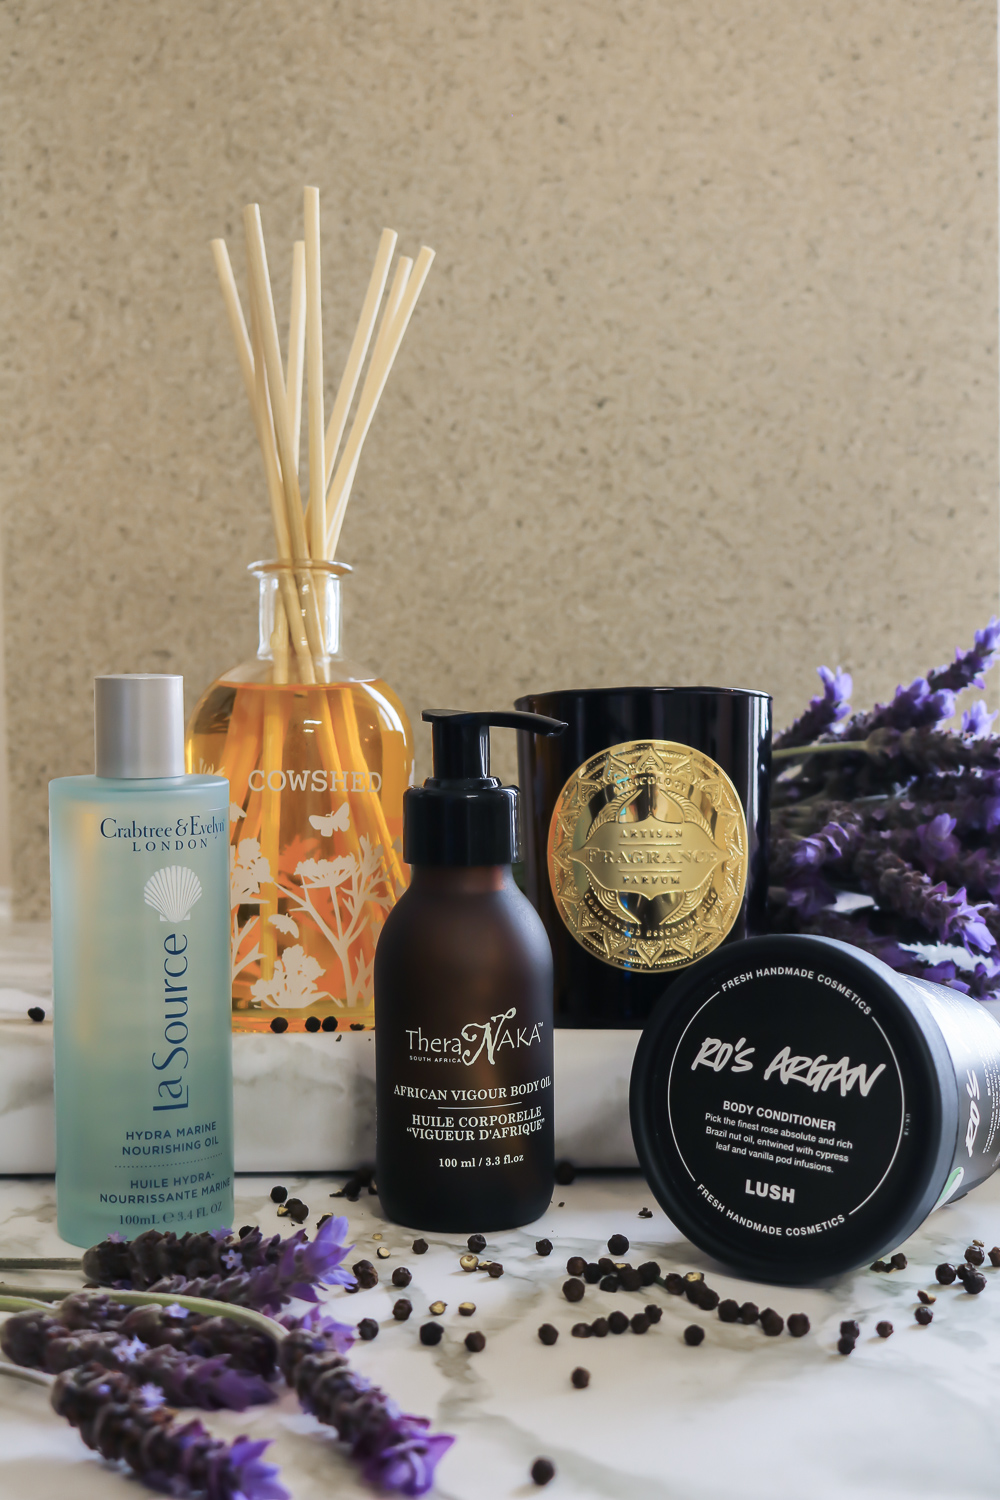 Home and beauty fragrances